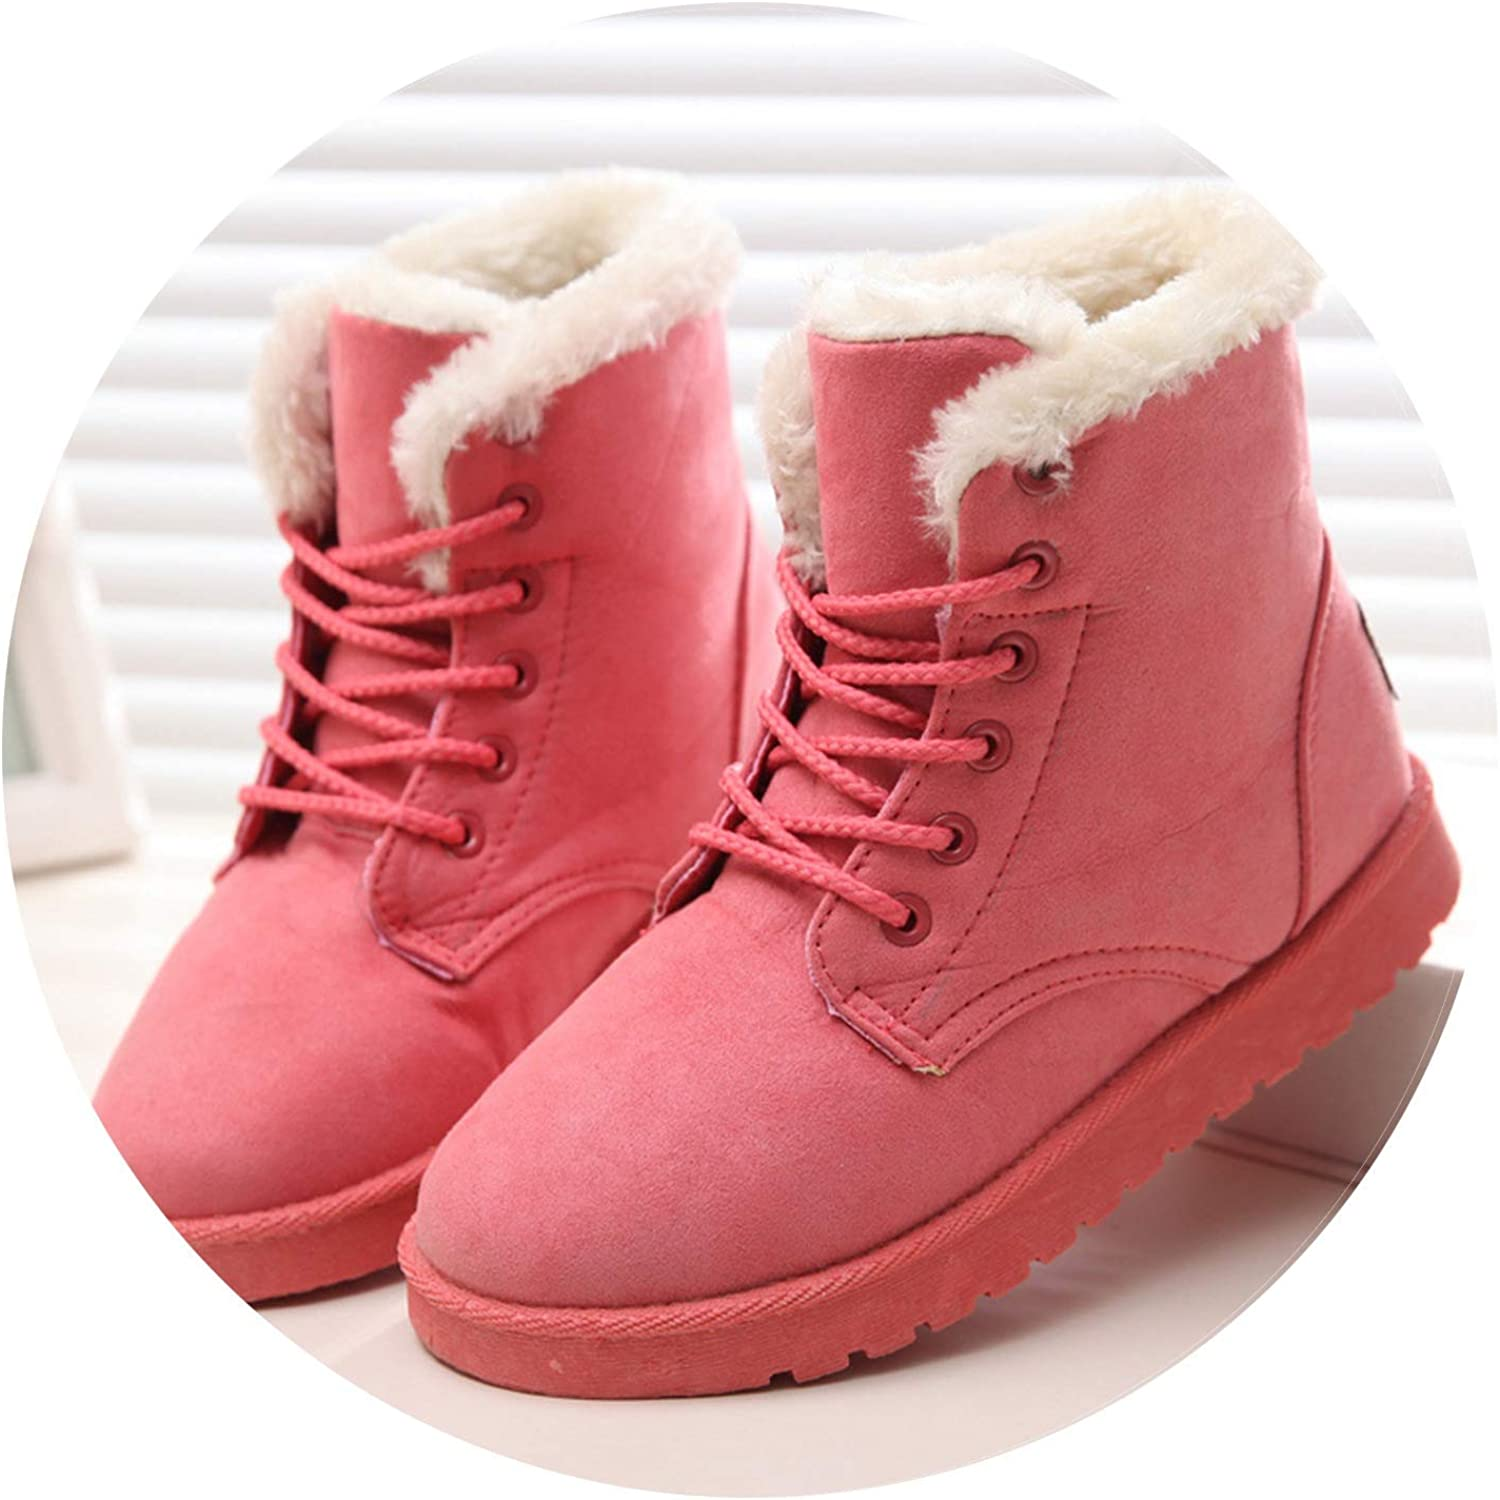 Women Boots Winter Super Warm Snow Boots Women Suede Ankle Boots for Female Winter shoes women Plush Booties